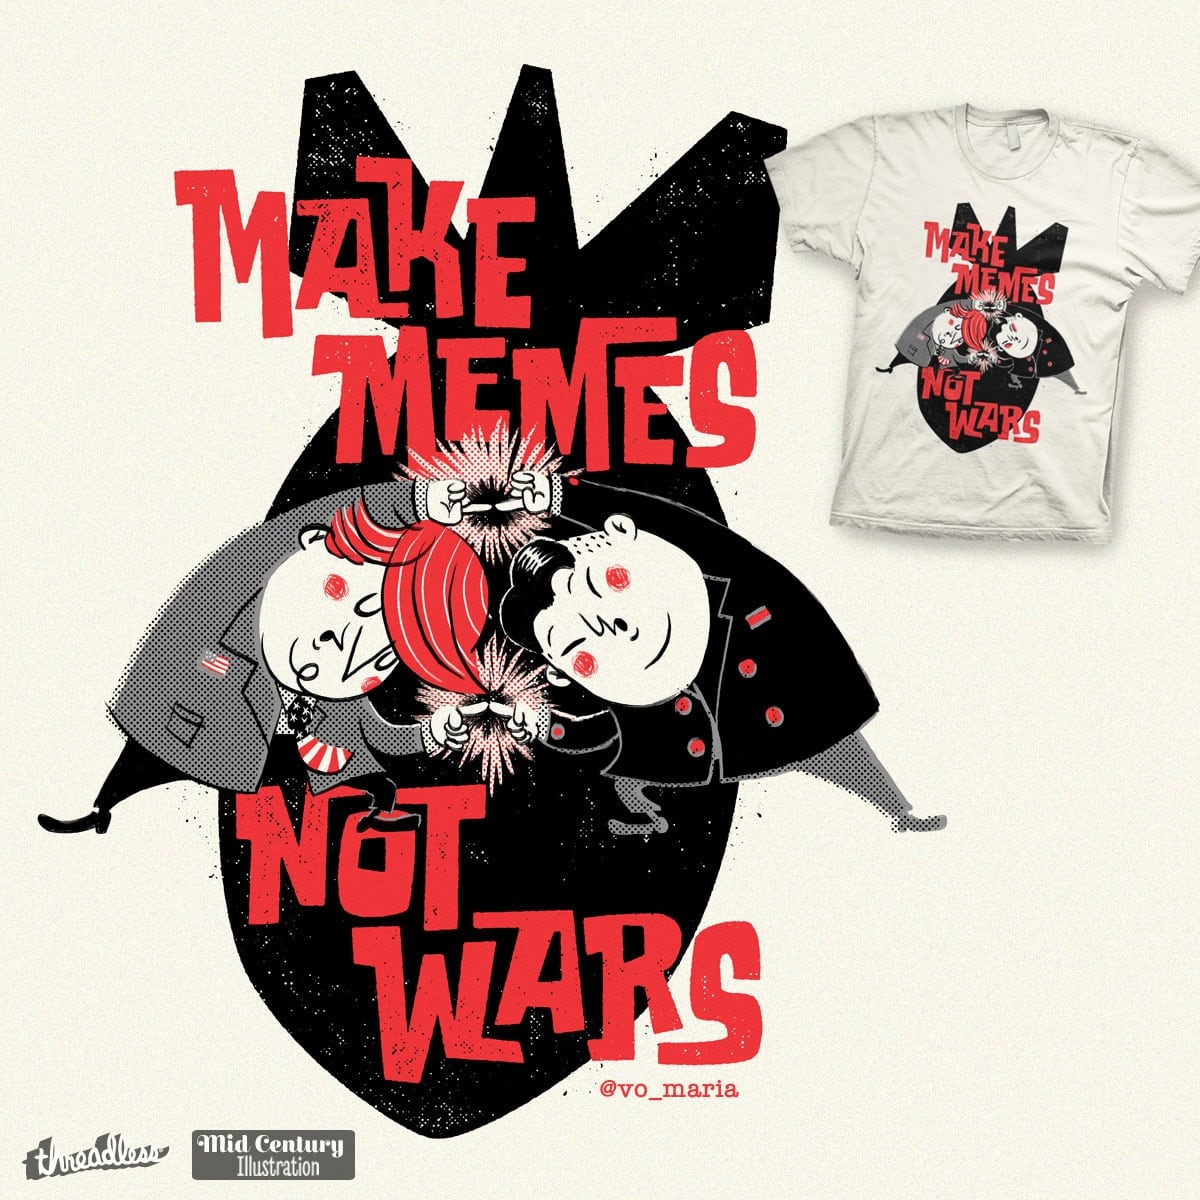 Make Memes, Not Wars by vo maria on Threadless